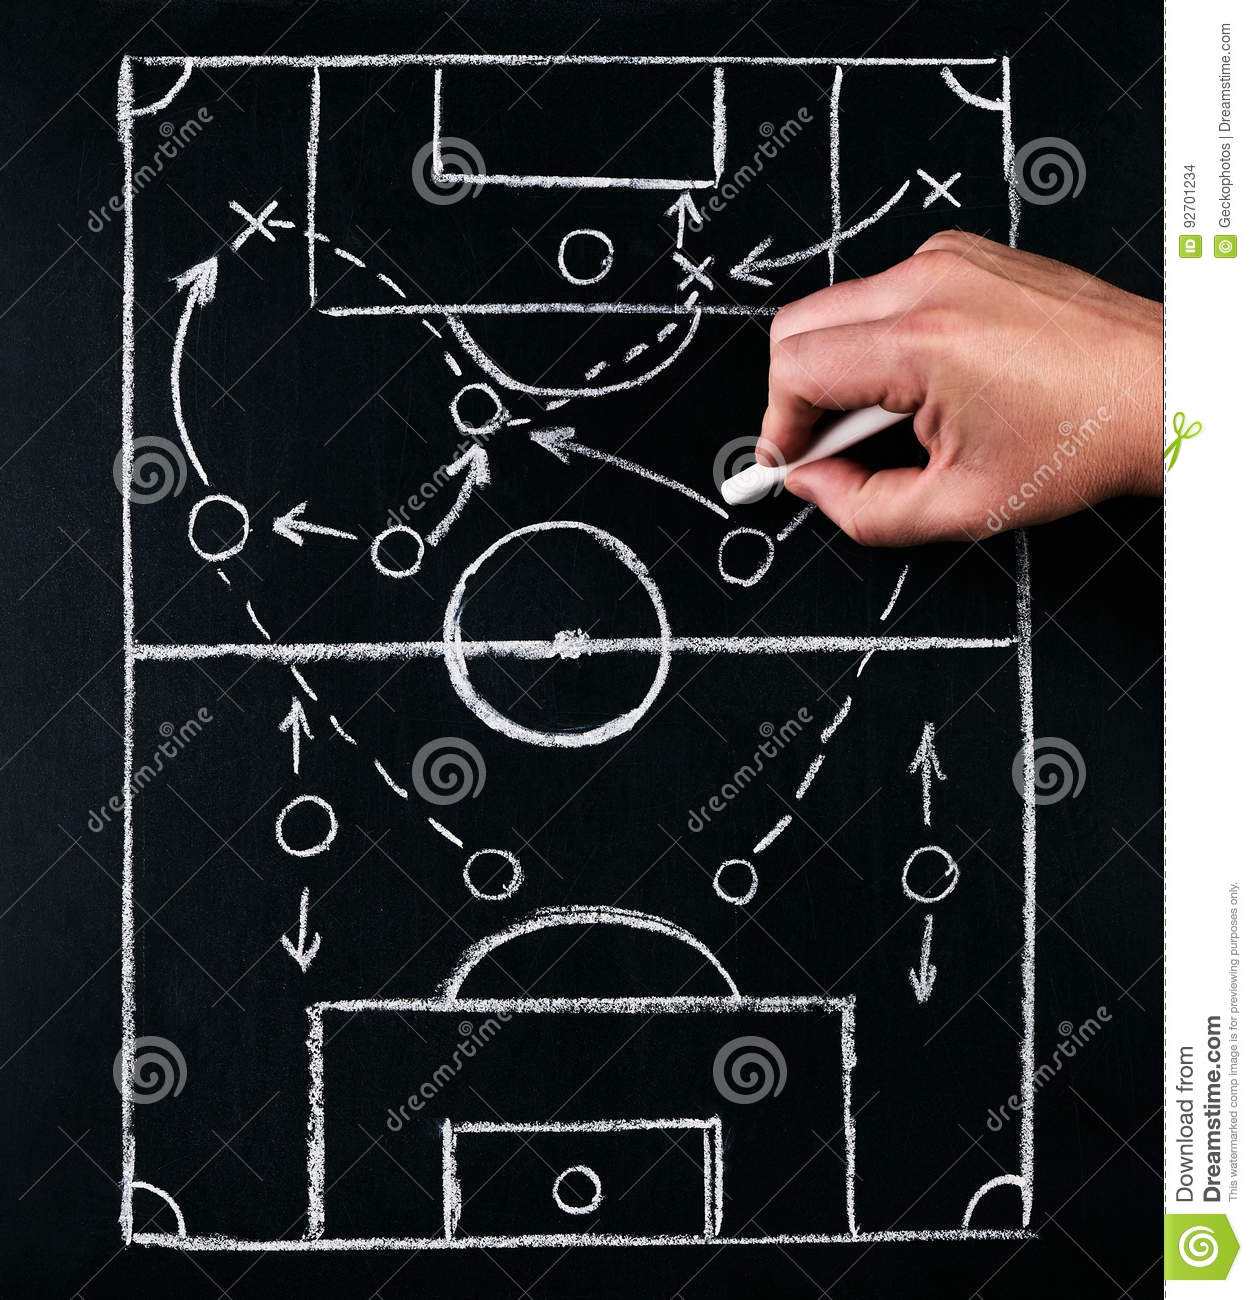 strategy of football or soccer play tactics  drawn by chalk on the chalk board with a football